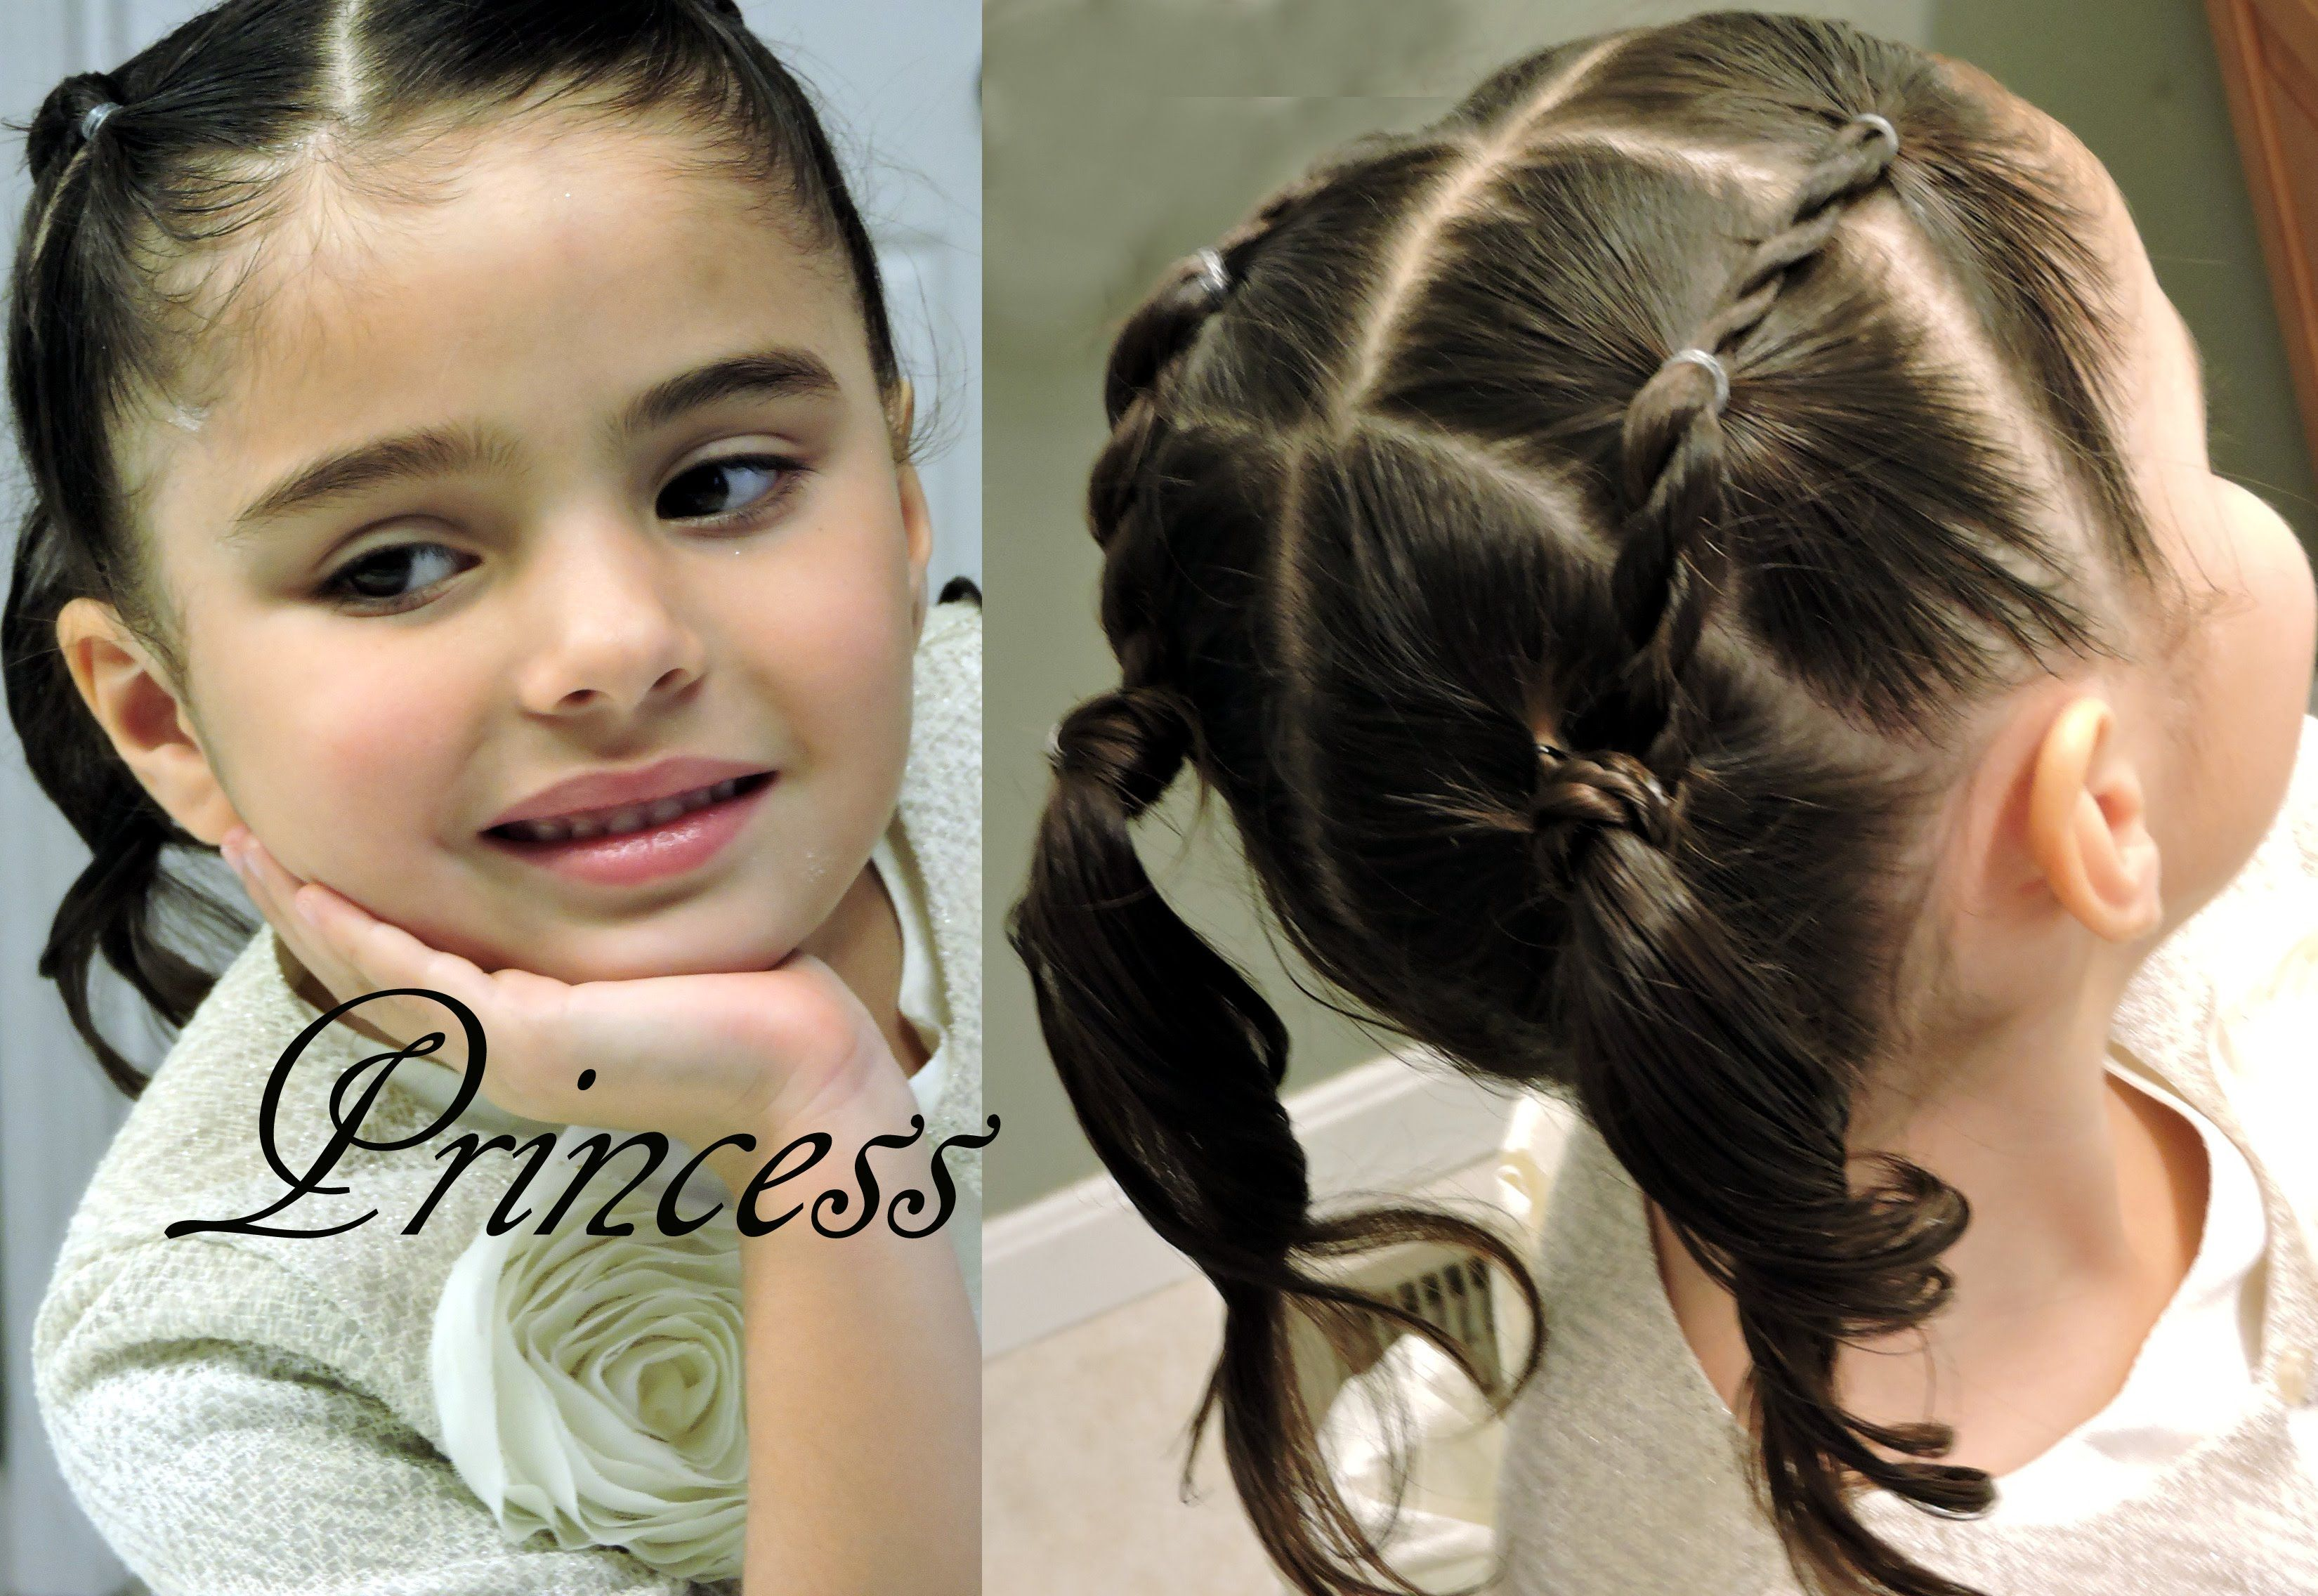 Video Paso A Paso Peinado Infantil De Ligas Video Tutorial Two Side Rope Twists For Little Girls Check Www 2superdivas Com Hairdo Beauty Fashion